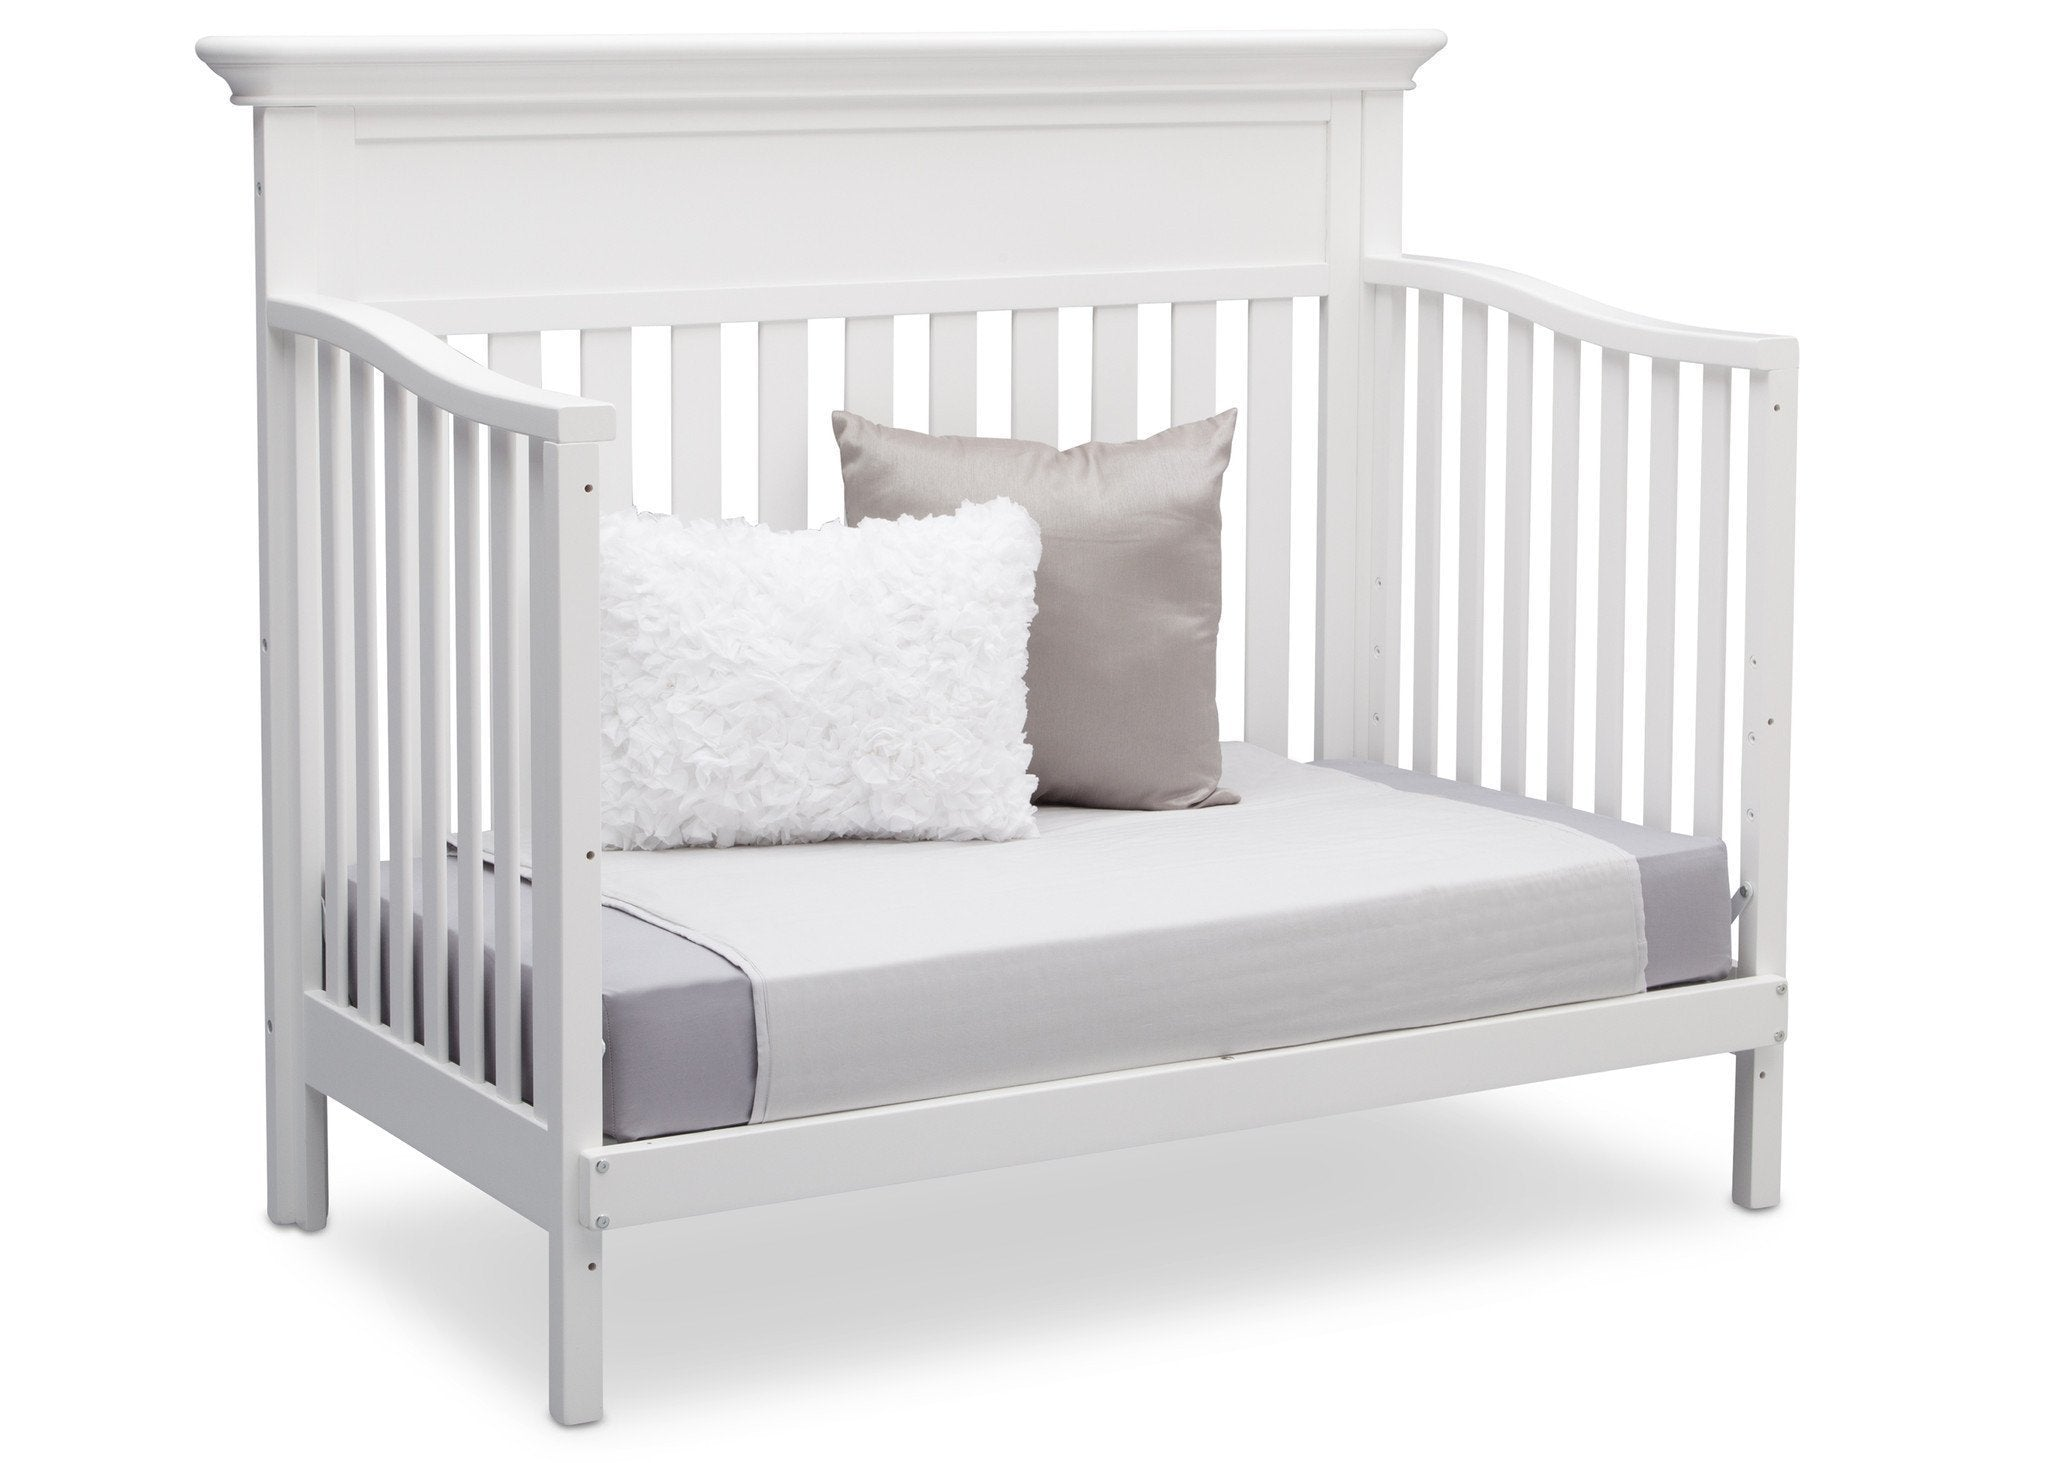 Serta Bianca (130) Fernwood 4-in-1 Crib, Side View with Day Bed Conversion a6a